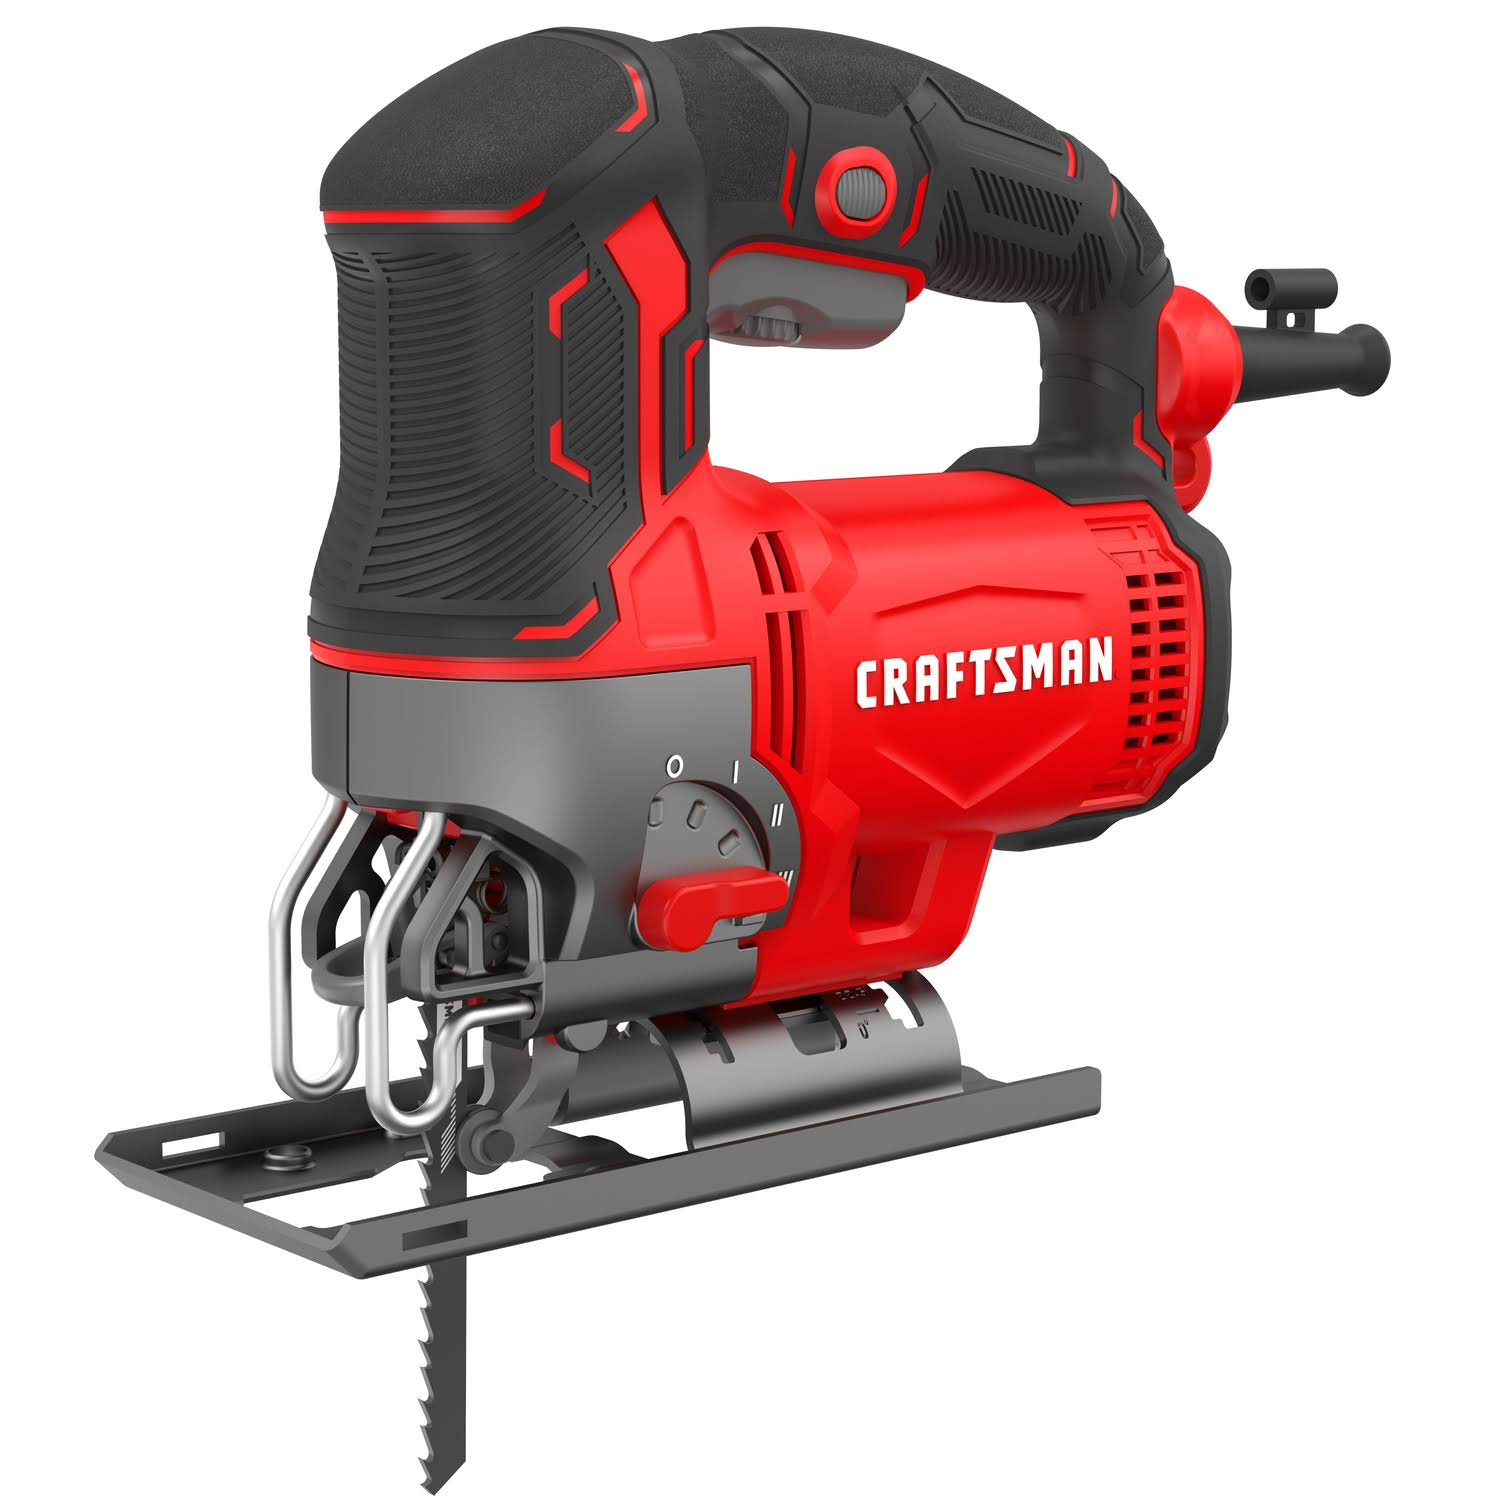 Craftsman Keyless U Shank Variable Speed Corded Jigsaw - 6amp